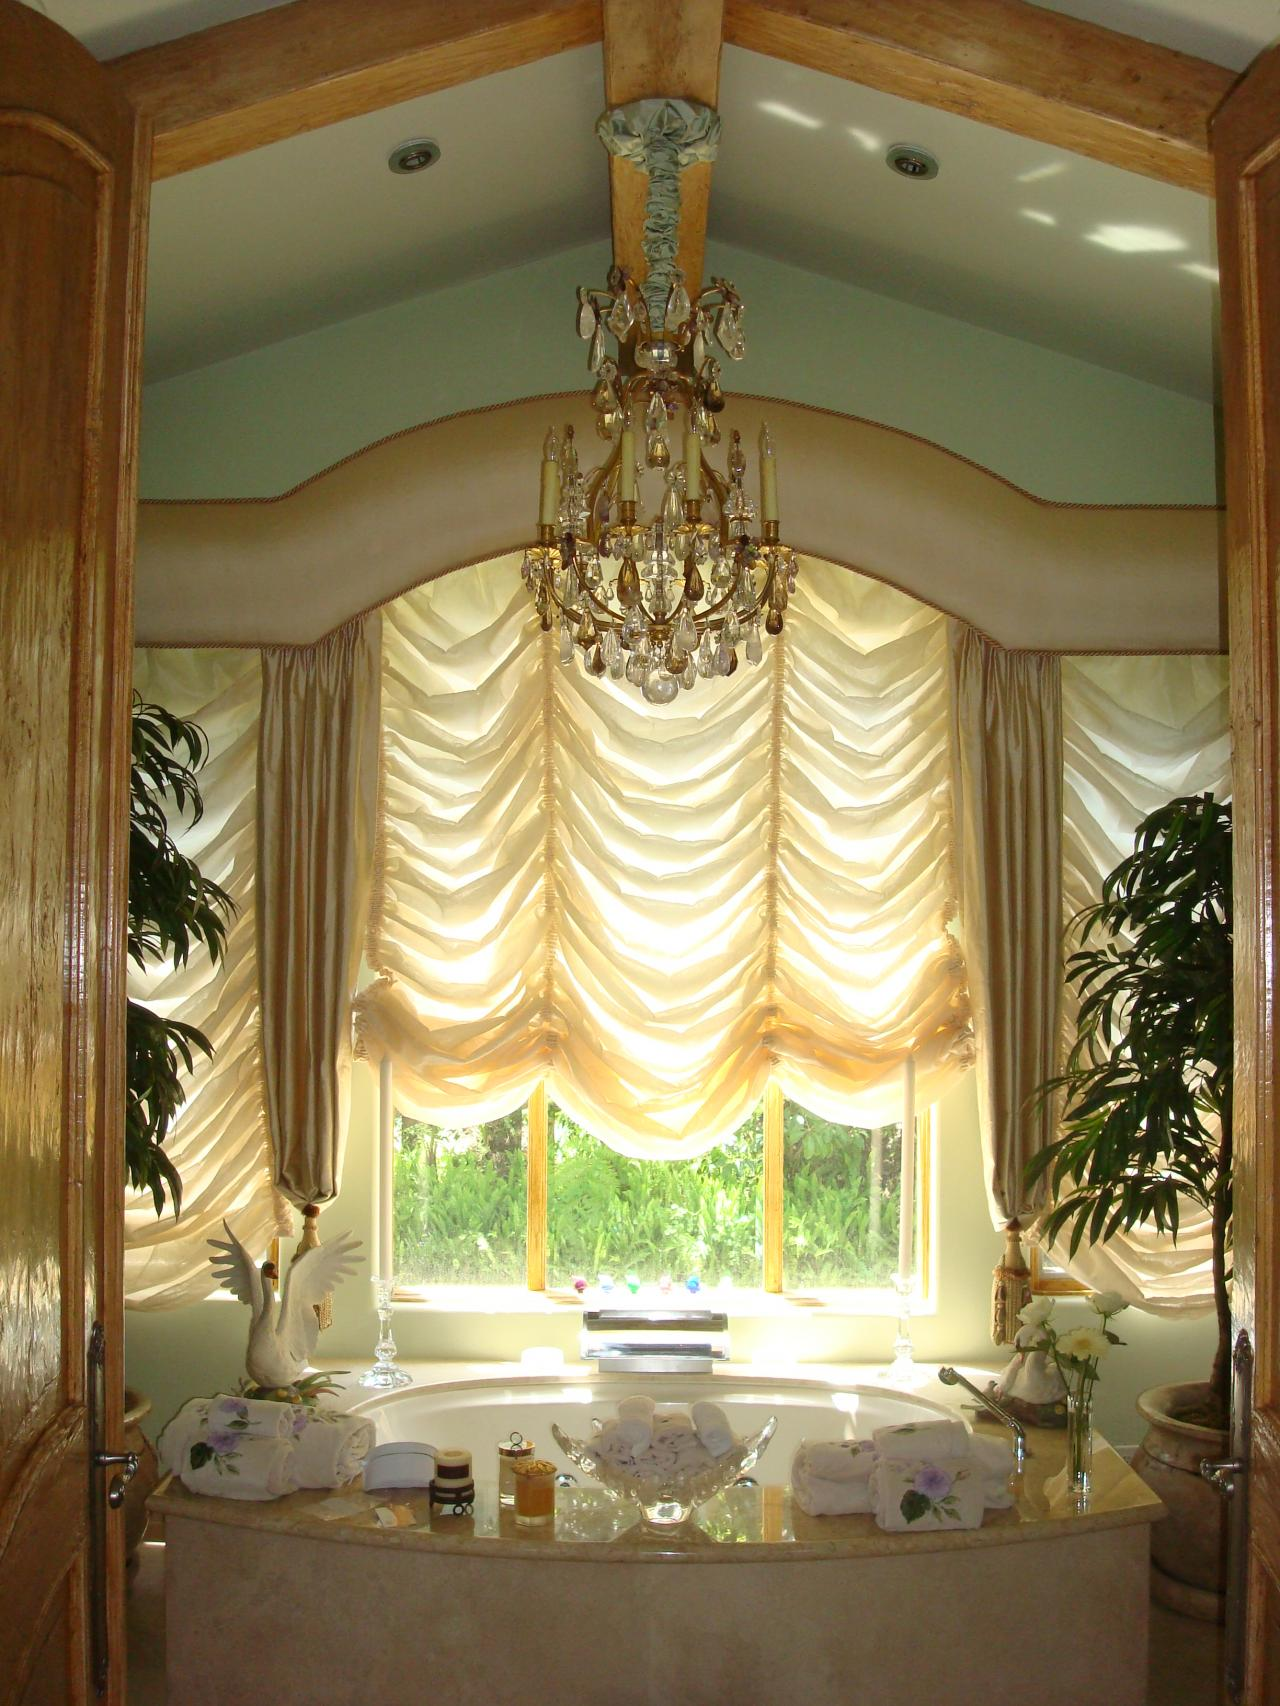 Bathroom Window Treatments, Blinds, Shades, Shutters | VWF NYC NJ